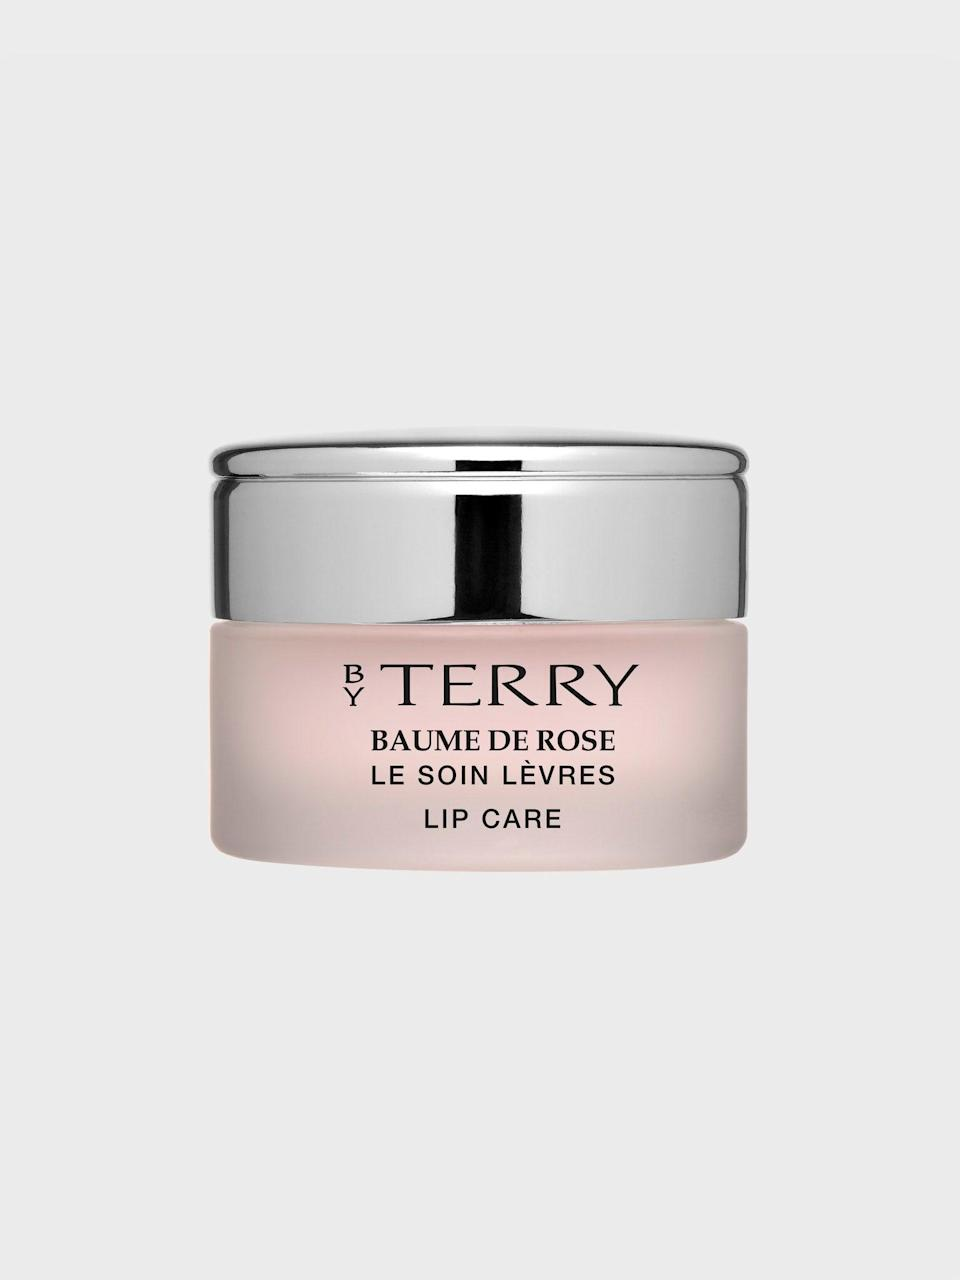 "<h3>By Terry Baume De Rose</h3> <br>Good things come in small packages...especially when it's a tiny pink box of By Terry's top-selling Baume De Rose. (P.S. We also love the <a href=""https://www.verishop.com/by-terry/lip-gloss/baume-de-rose-nutri-couleur/p1881961693219?variant_id=15612535930915"" rel=""nofollow noopener"" target=""_blank"" data-ylk=""slk:tinted options"" class=""link rapid-noclick-resp"">tinted options</a> for sheer, glossy color with the same hydrating benefits.)<br><br><strong>By Terry</strong> Baume de Rose, $, available at <a href=""https://go.skimresources.com/?id=30283X879131&url=https%3A%2F%2Fwww.verishop.com%2Fby-terry%2Flip-balm%2Fbaume-de-rose-jar%2Fp1882002194467%3Fvariant_id%3D15612729786403"" rel=""nofollow noopener"" target=""_blank"" data-ylk=""slk:Verishop"" class=""link rapid-noclick-resp"">Verishop</a><br>"